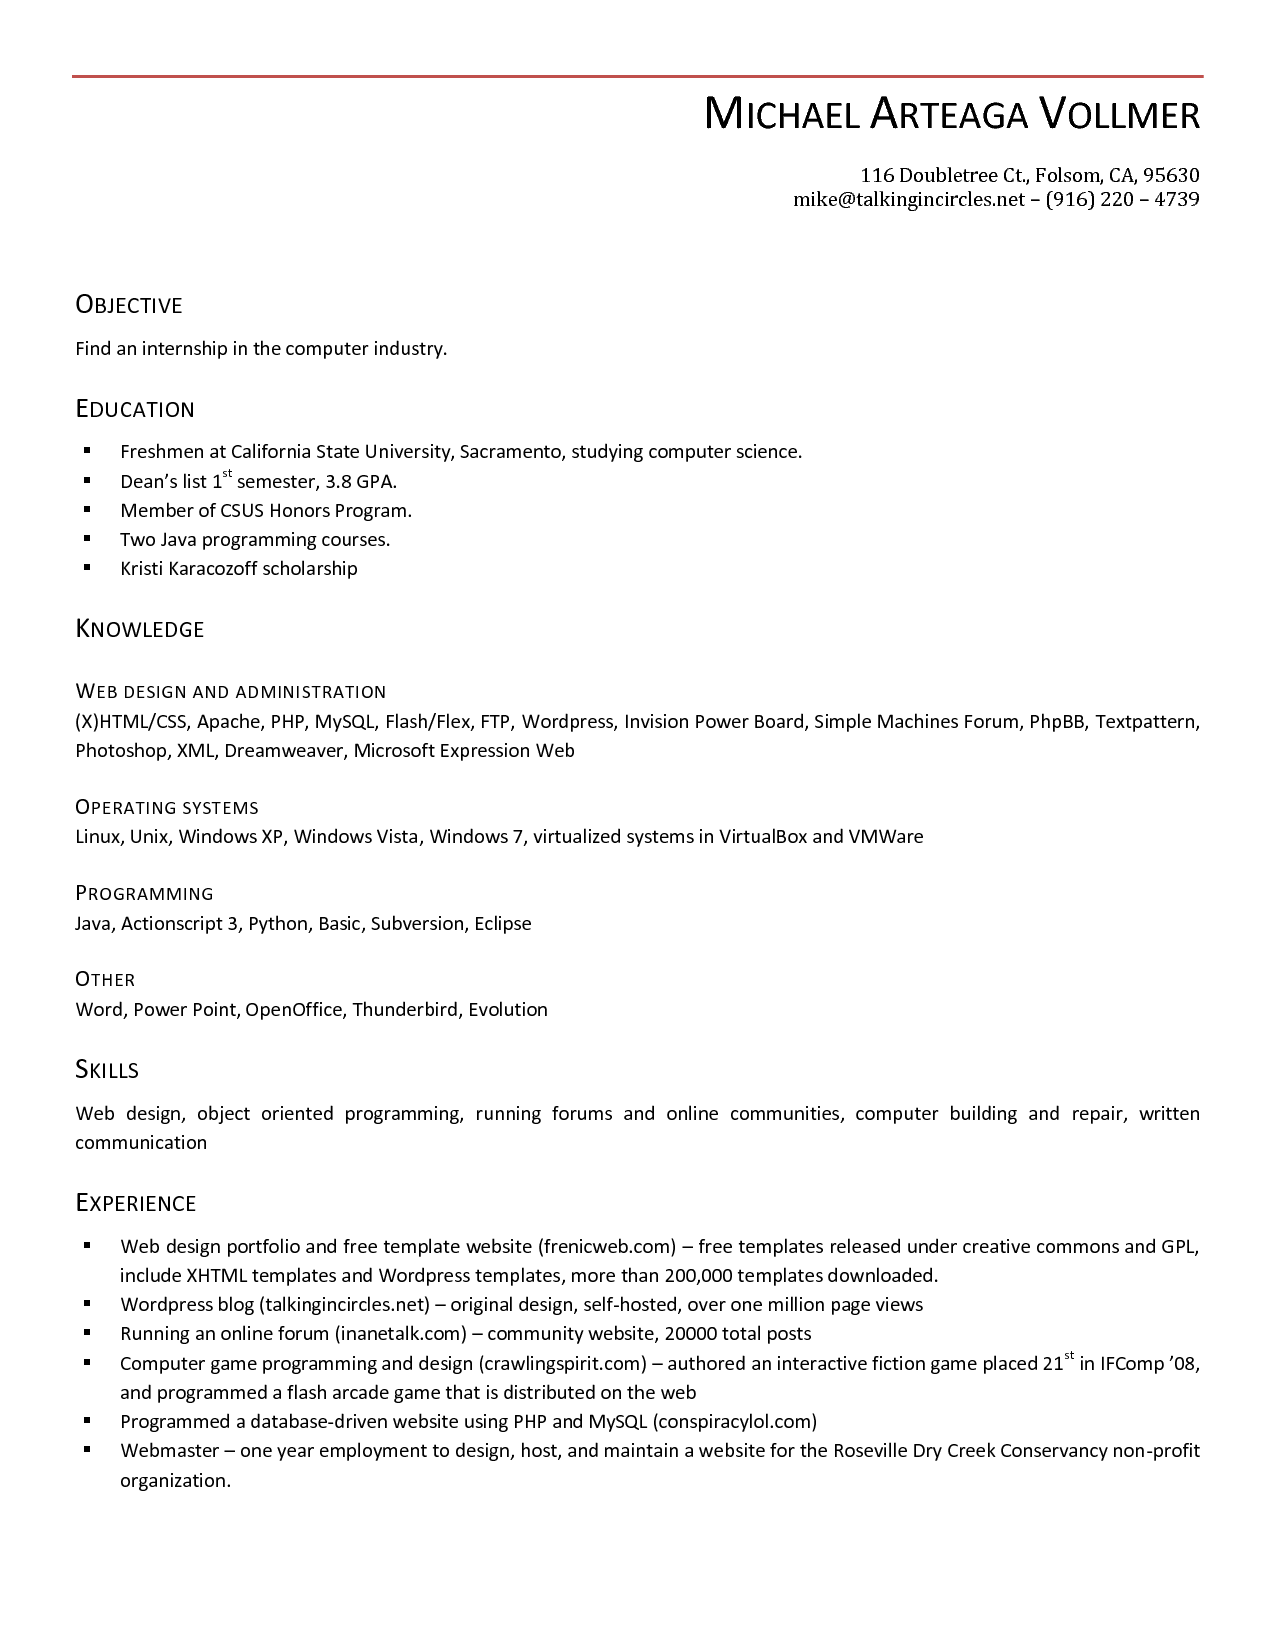 Resume Templates Free Download For Microsoft Word Legal Template Best  Create Professional Resumes Online Simple Openo  Resume Wizard Free